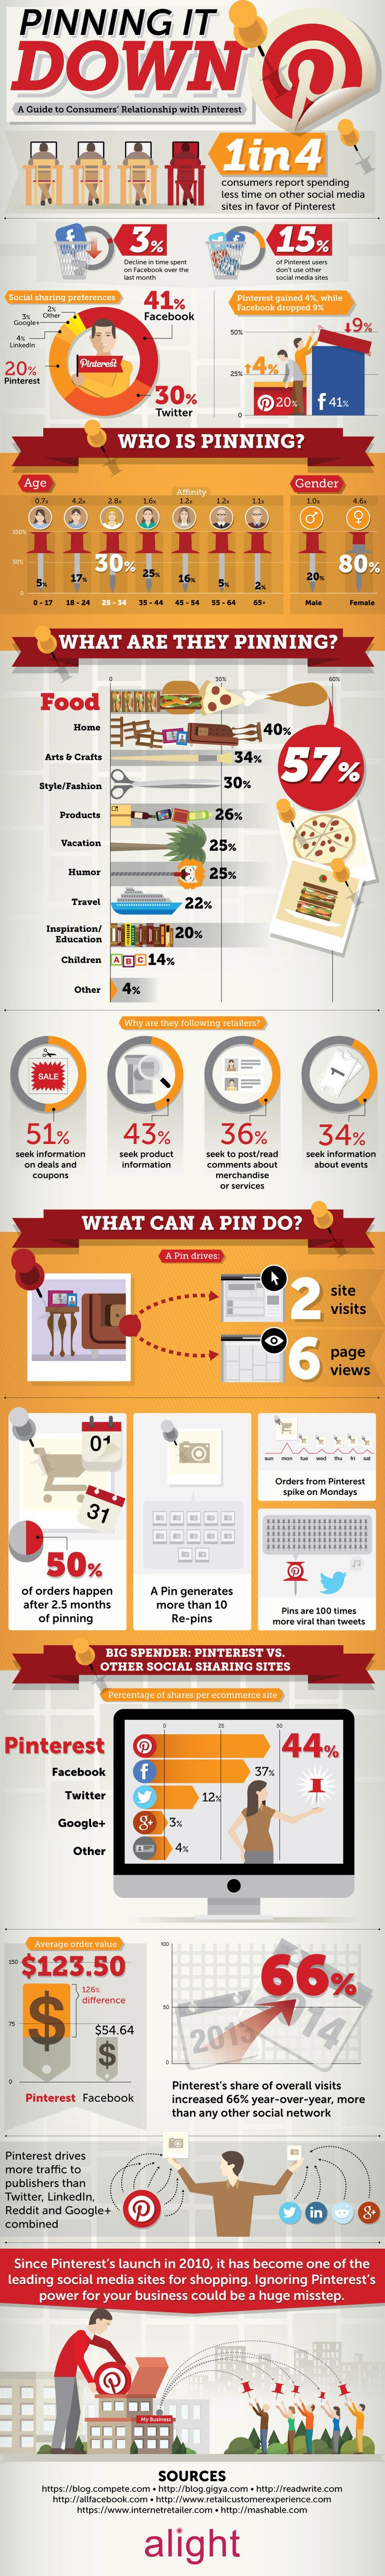 Pinning it Down: A Guide to Consumers' Relationship with Pinterest #infographic | via #BornToBeSocial - Pinterest Marketing